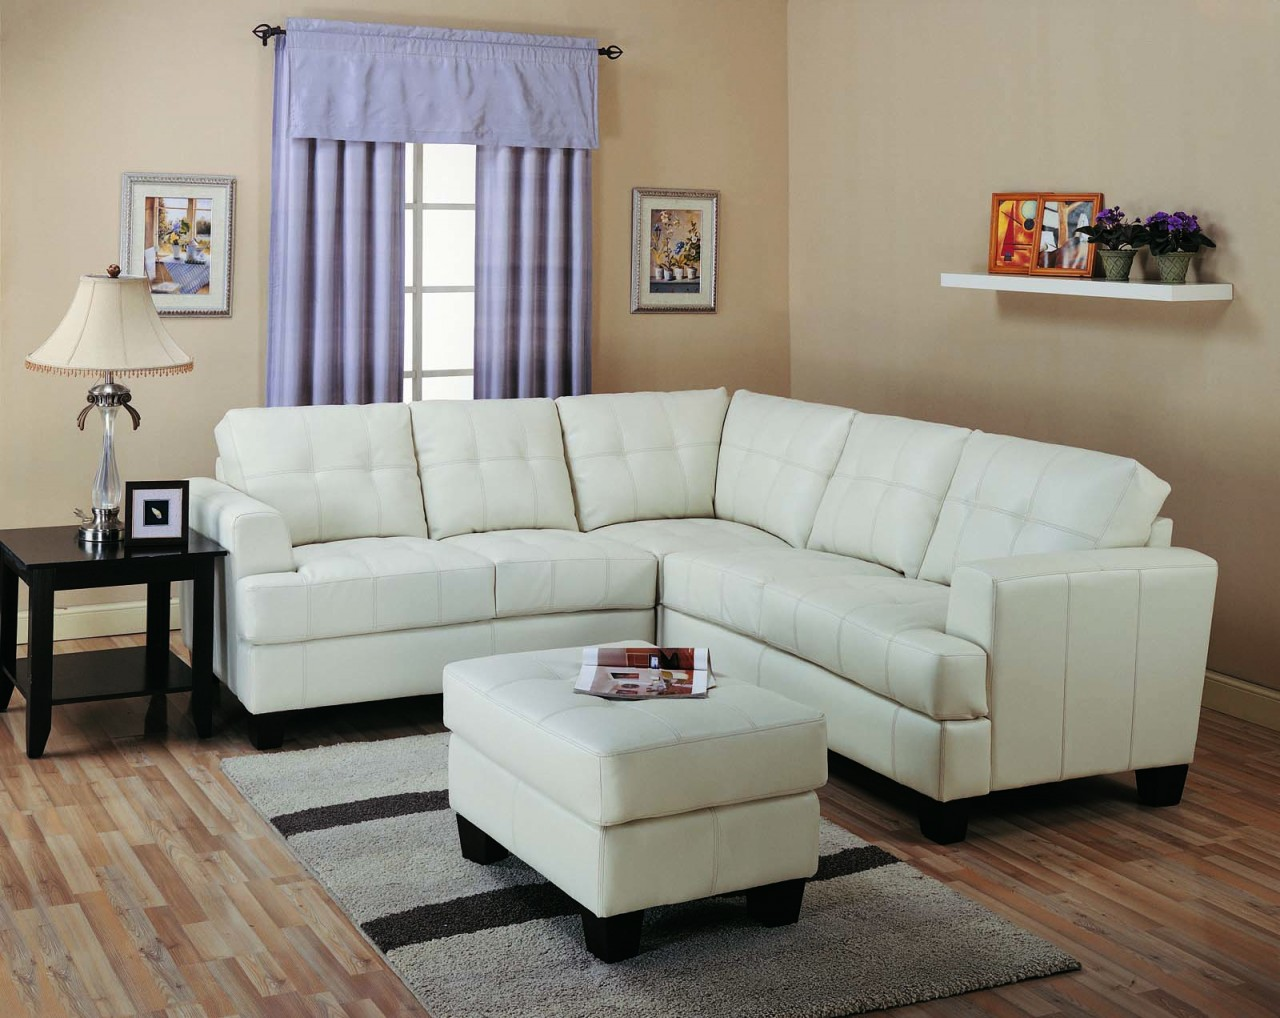 Types of best small sectional couches for small living for Sofa in a small living room